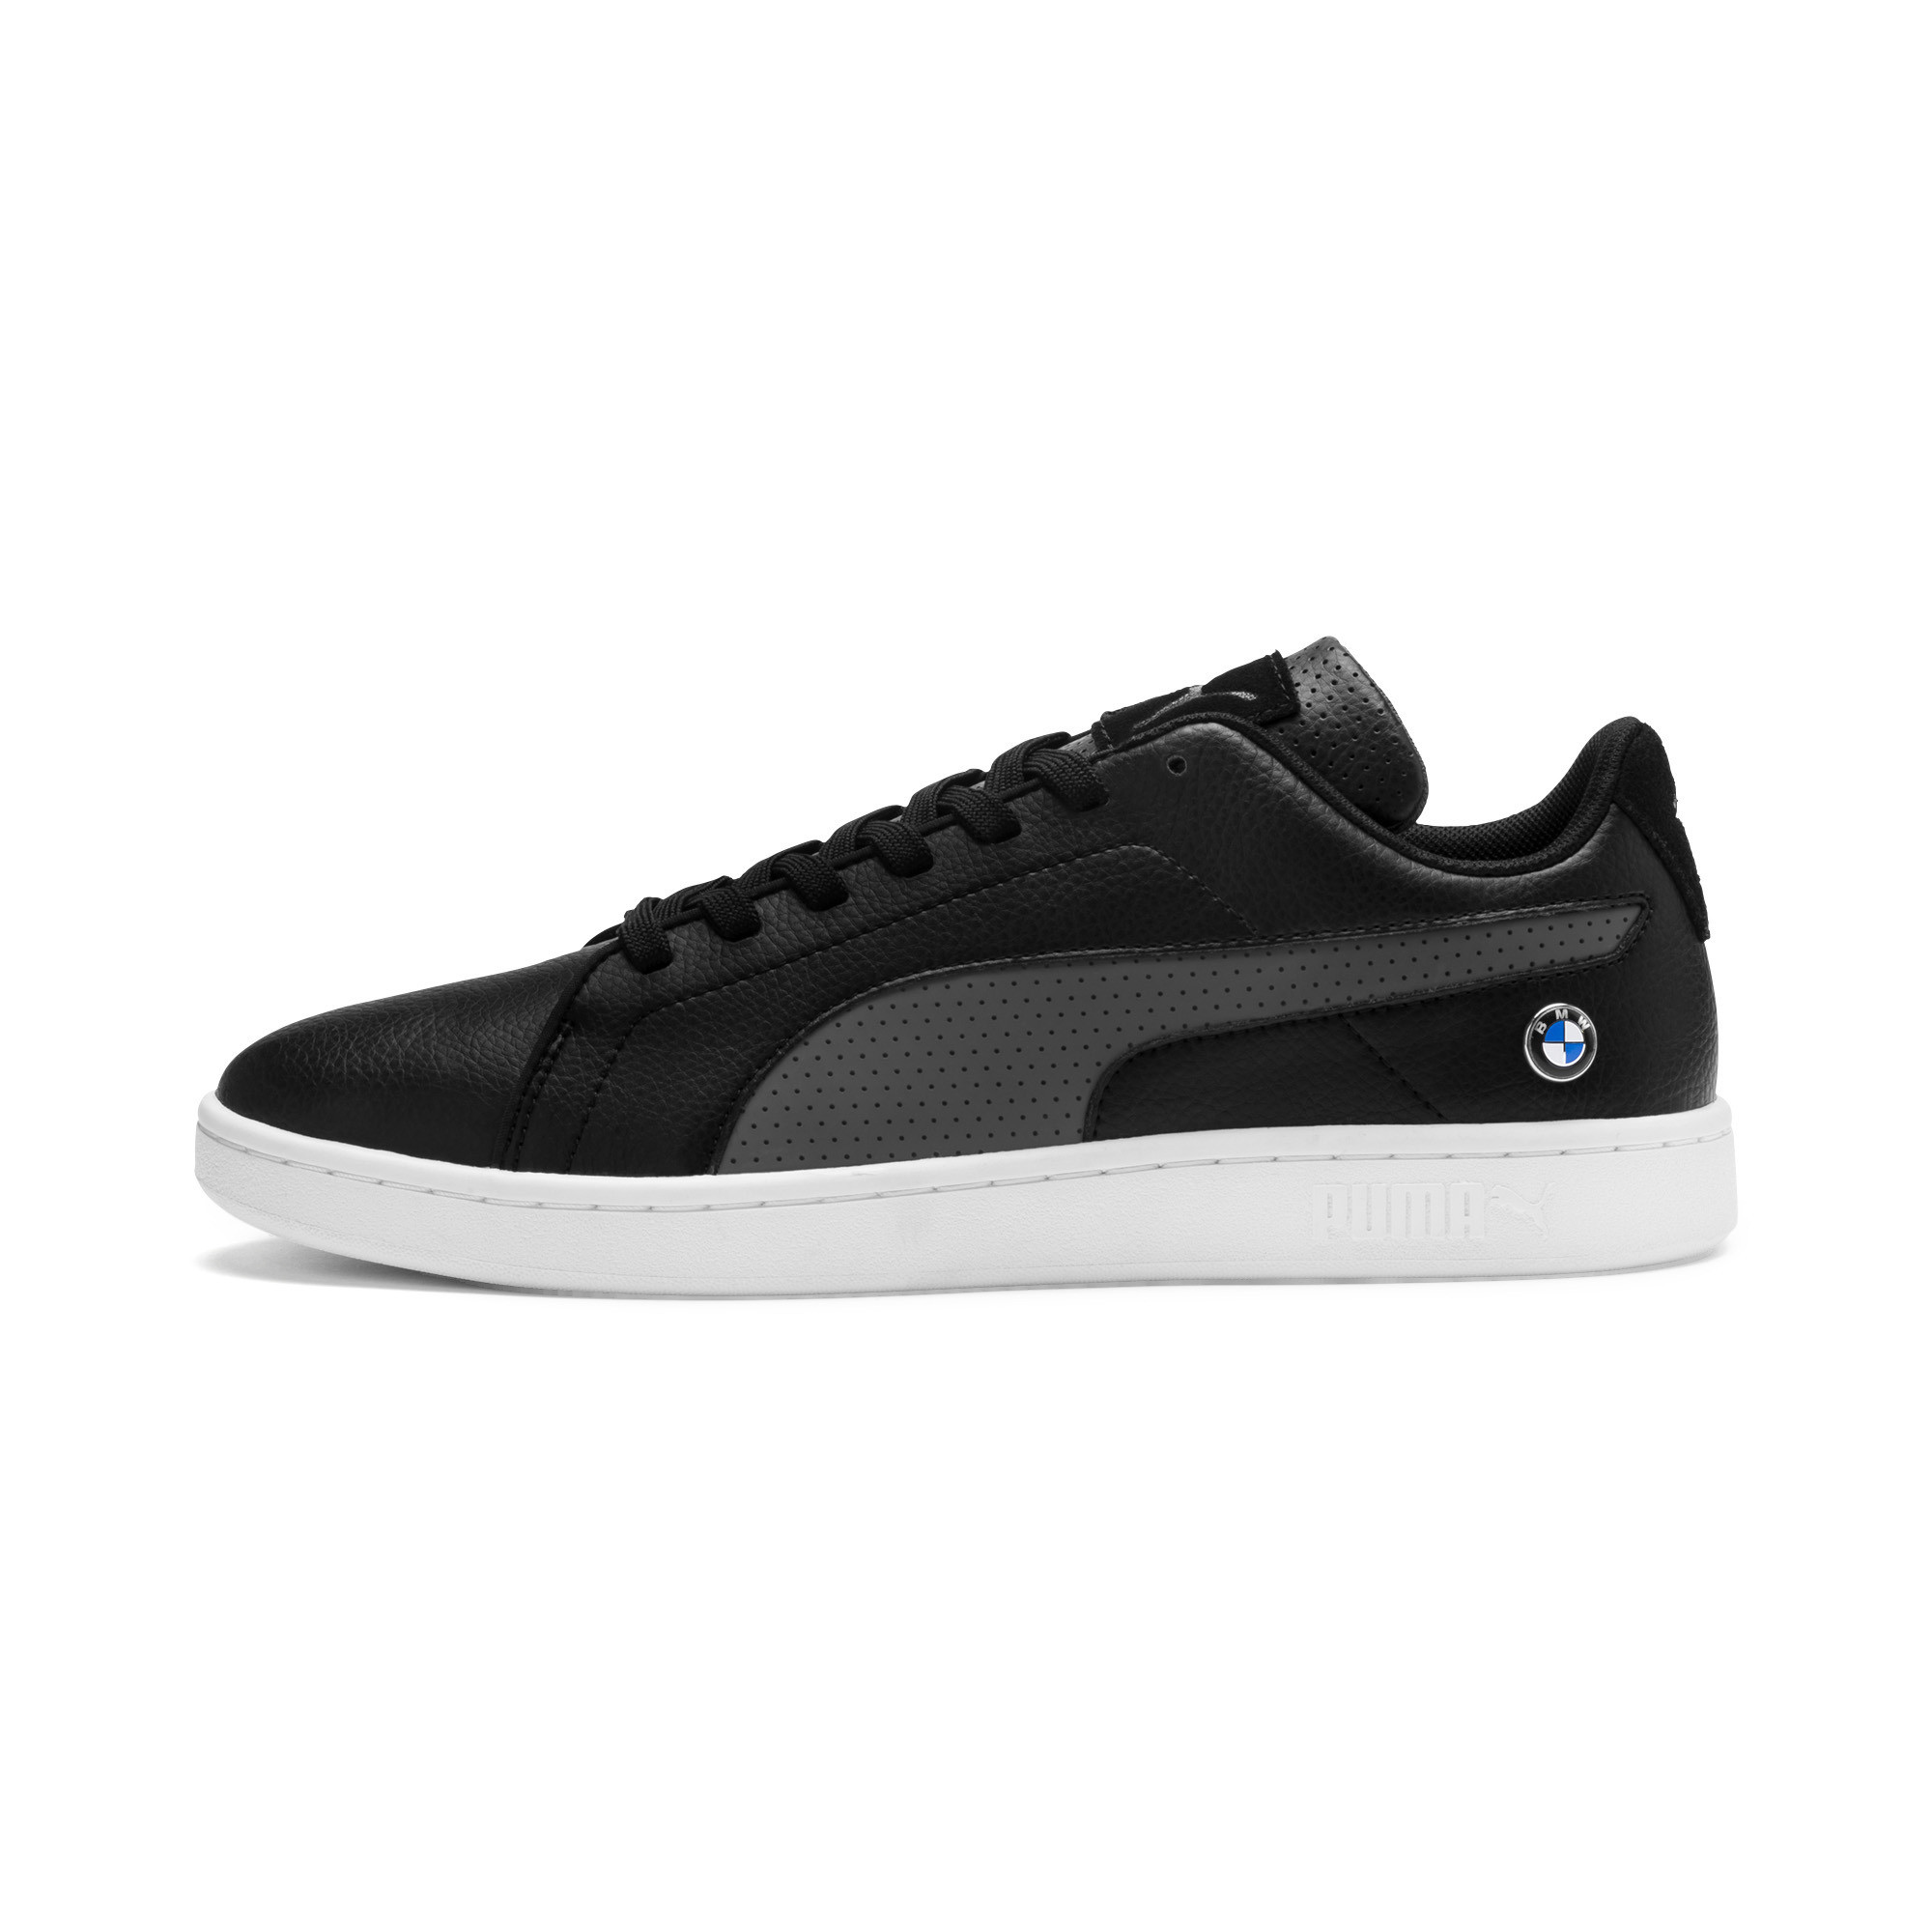 PUMA-BMW-M-Motorsport-Smash-v2-Men-039-s-Sneakers-Men-Shoe-Auto miniatura 9